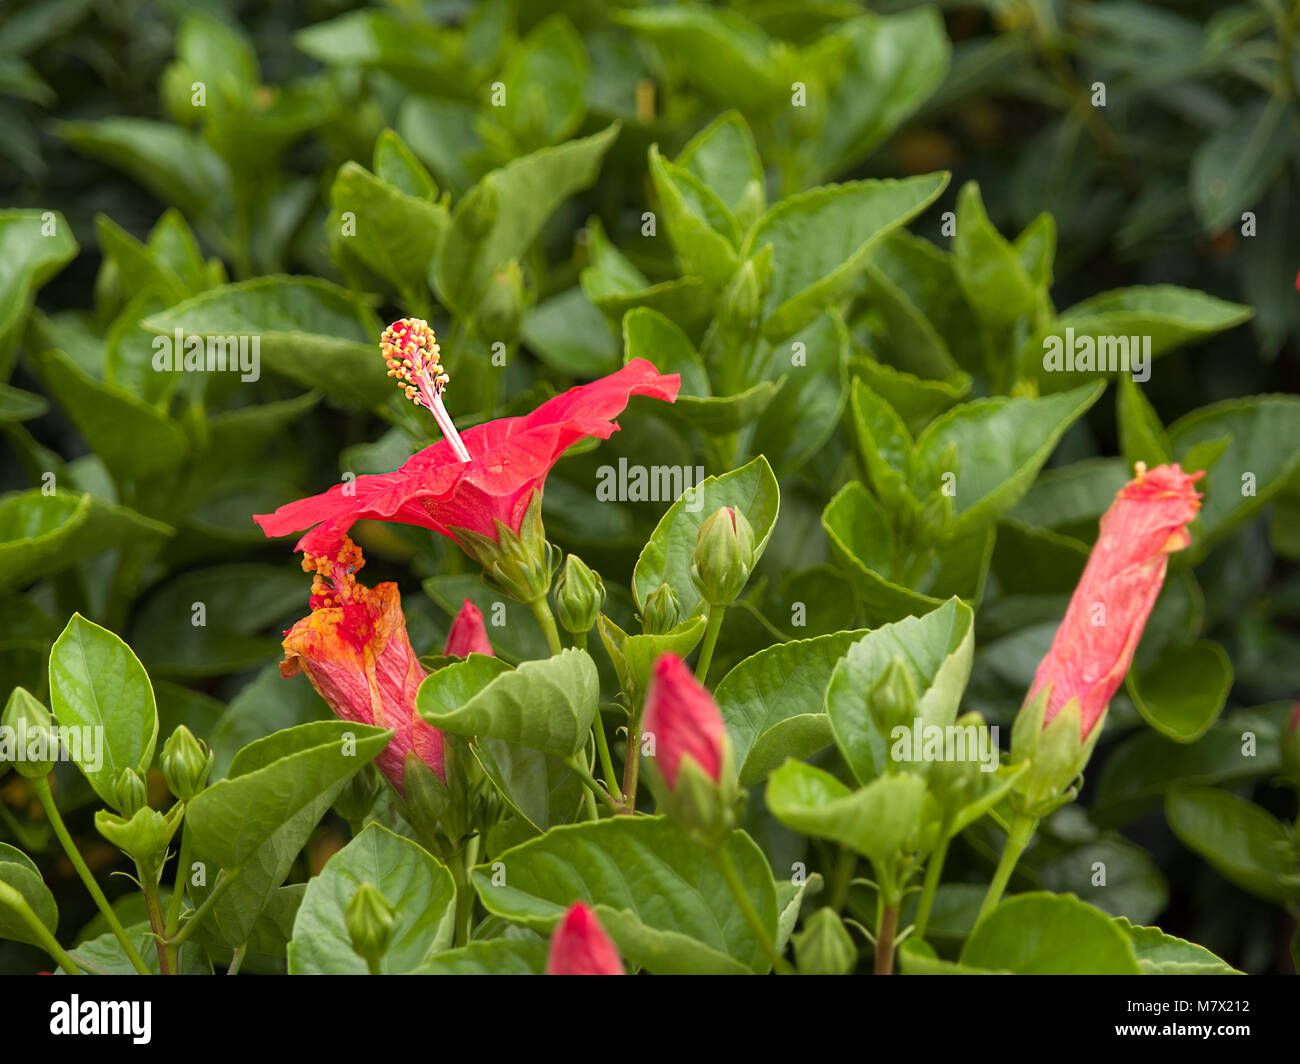 Jamaica national flower hibiscus gallery flower wallpaper hd hibiscus flower malaysia national flower stock photos hibiscus hibiscus the national flower of malaysia stock image izmirmasajfo Choice Image